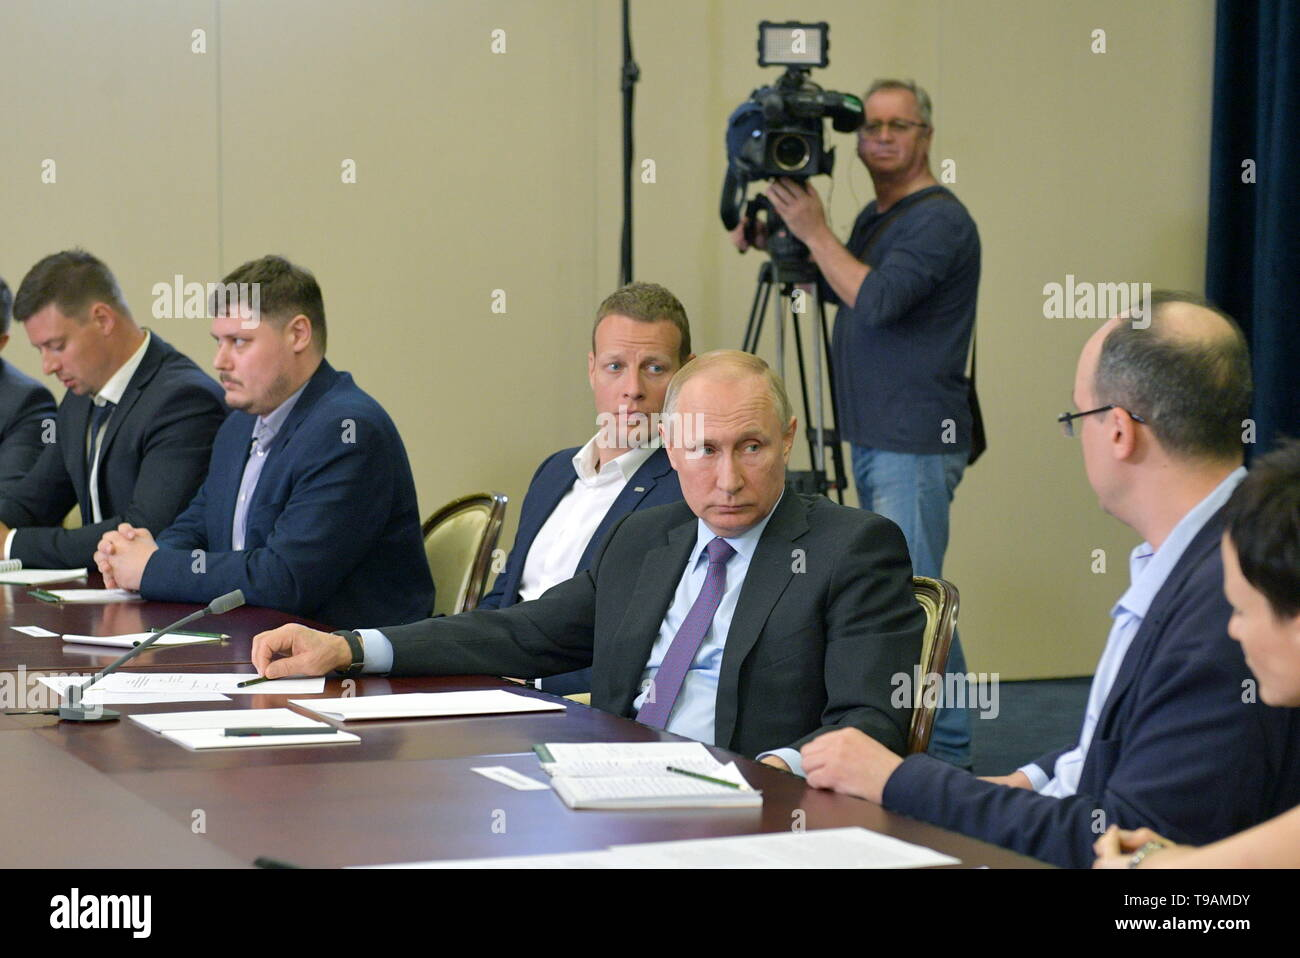 Moscow, Russia. 17th May, 2019. SOCHI, RUSSIA - MAY 17, 2019: Russia's President Vladimir Putin (2nd R) and Aarhus University (Denmark) professor Yuri Shtyrov (R) during a meeting with the winners of 'megagrants' for scientific research. Alexei Druzhinin/Russian Presidential Press and Information Office/TASS Credit: ITAR-TASS News Agency/Alamy Live News - Stock Image